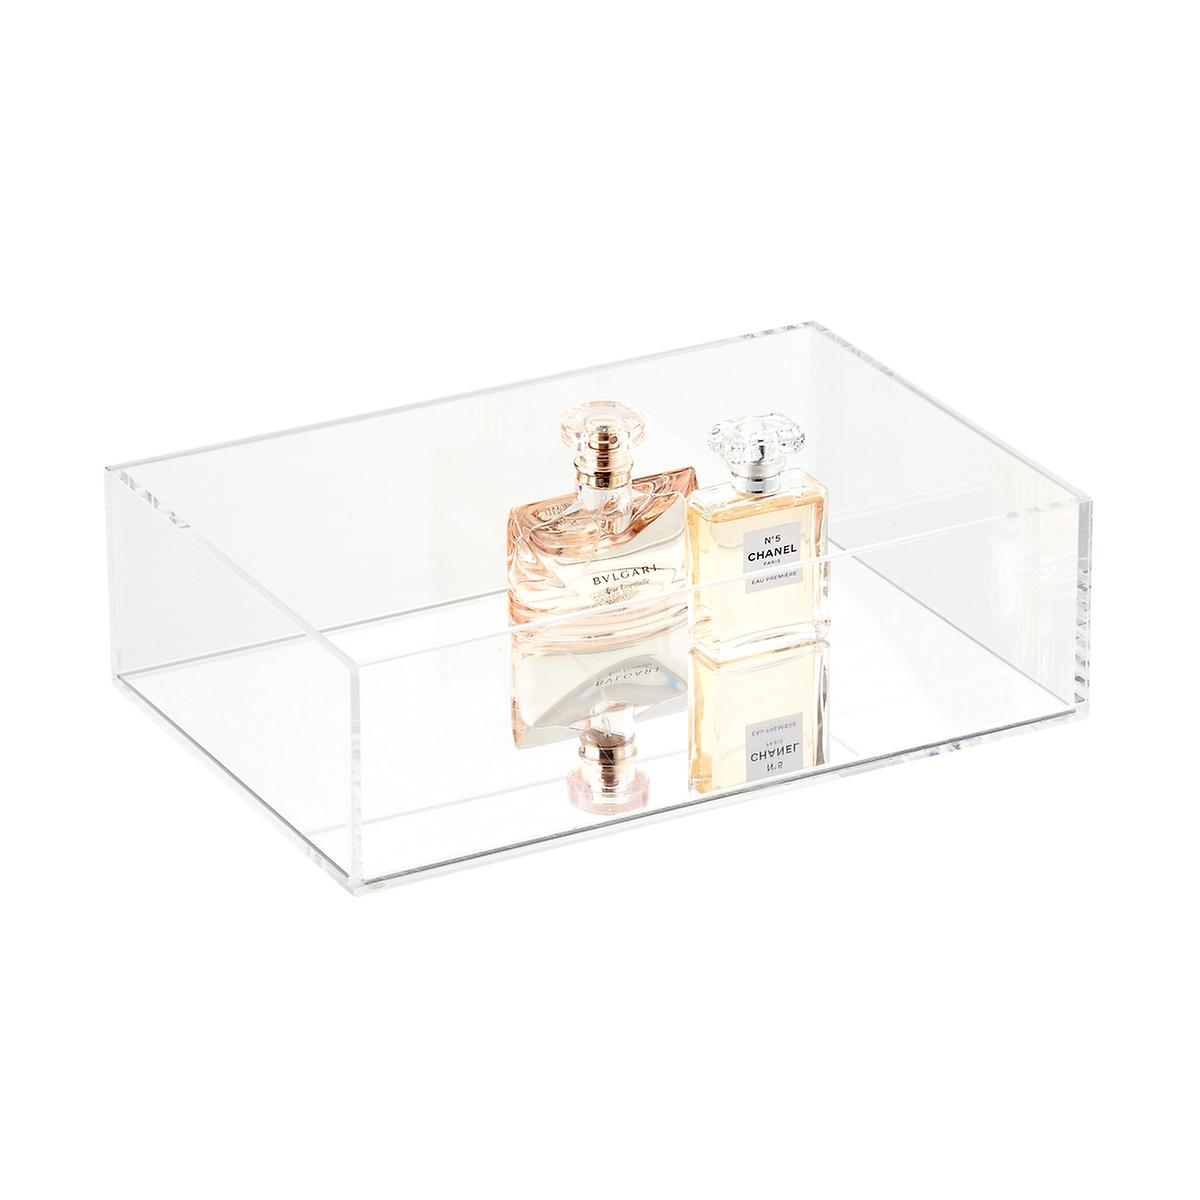 Acrylic tray with mirror base for storage from The Container Store